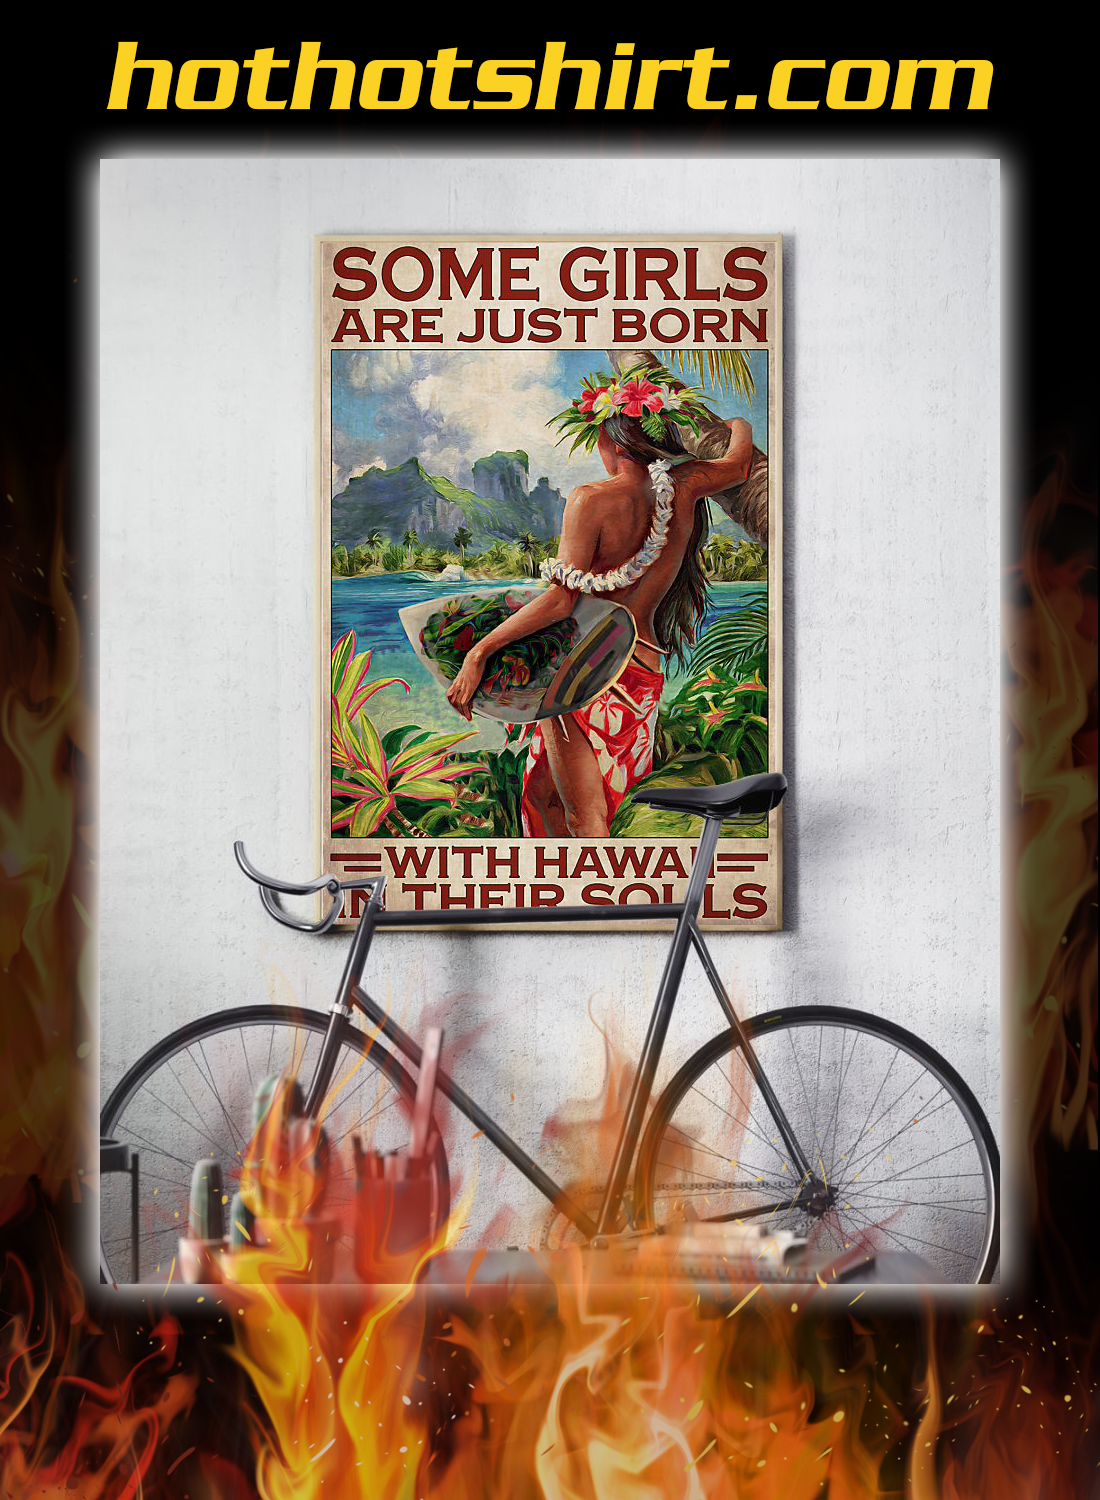 SOME GIRLS ARE JUST BORN WITH HAWAII IN THEIR SOULS POSTER 3